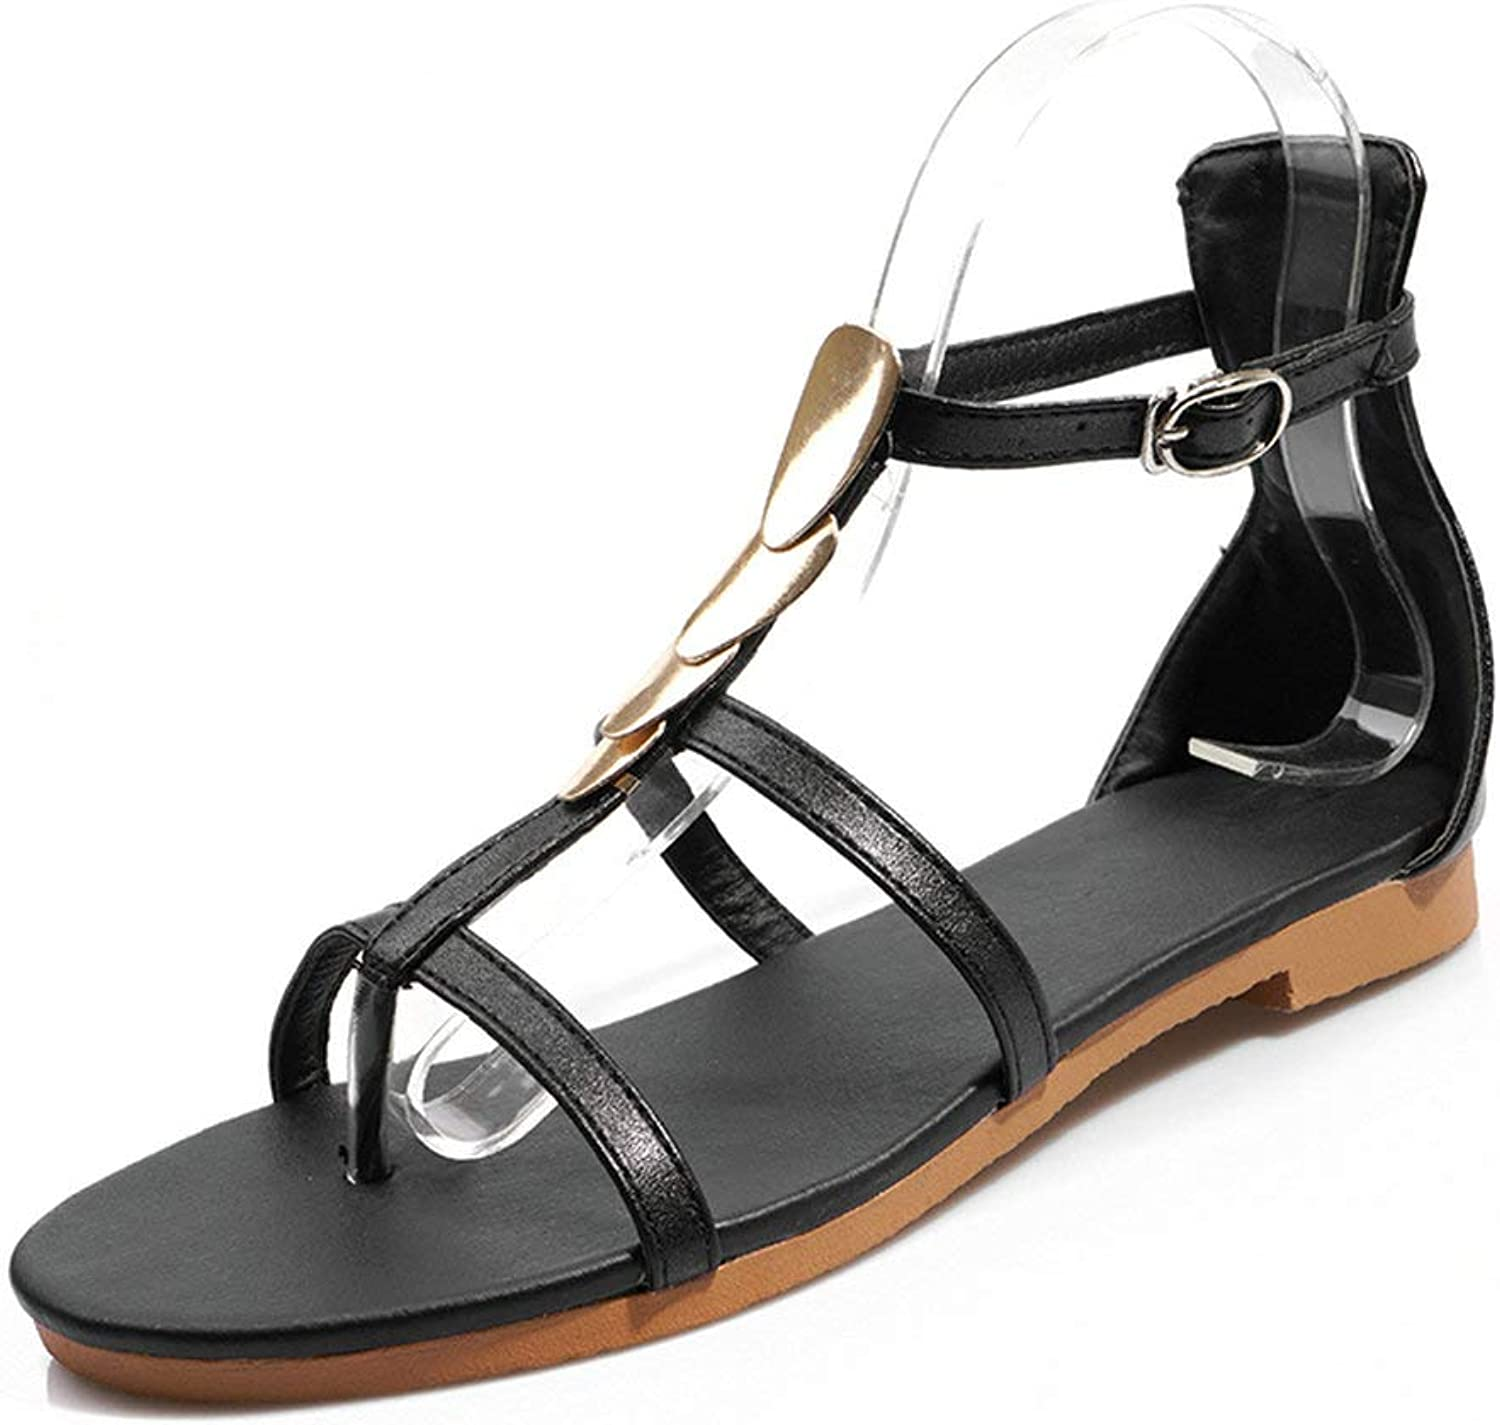 AnMengXinLing Flats Sandals Women T-Strap Flip Flops Summer Beach Thong Sandals Casual Ankle Strap Low Heel Metal Gladiator Daily shoes Silver Black